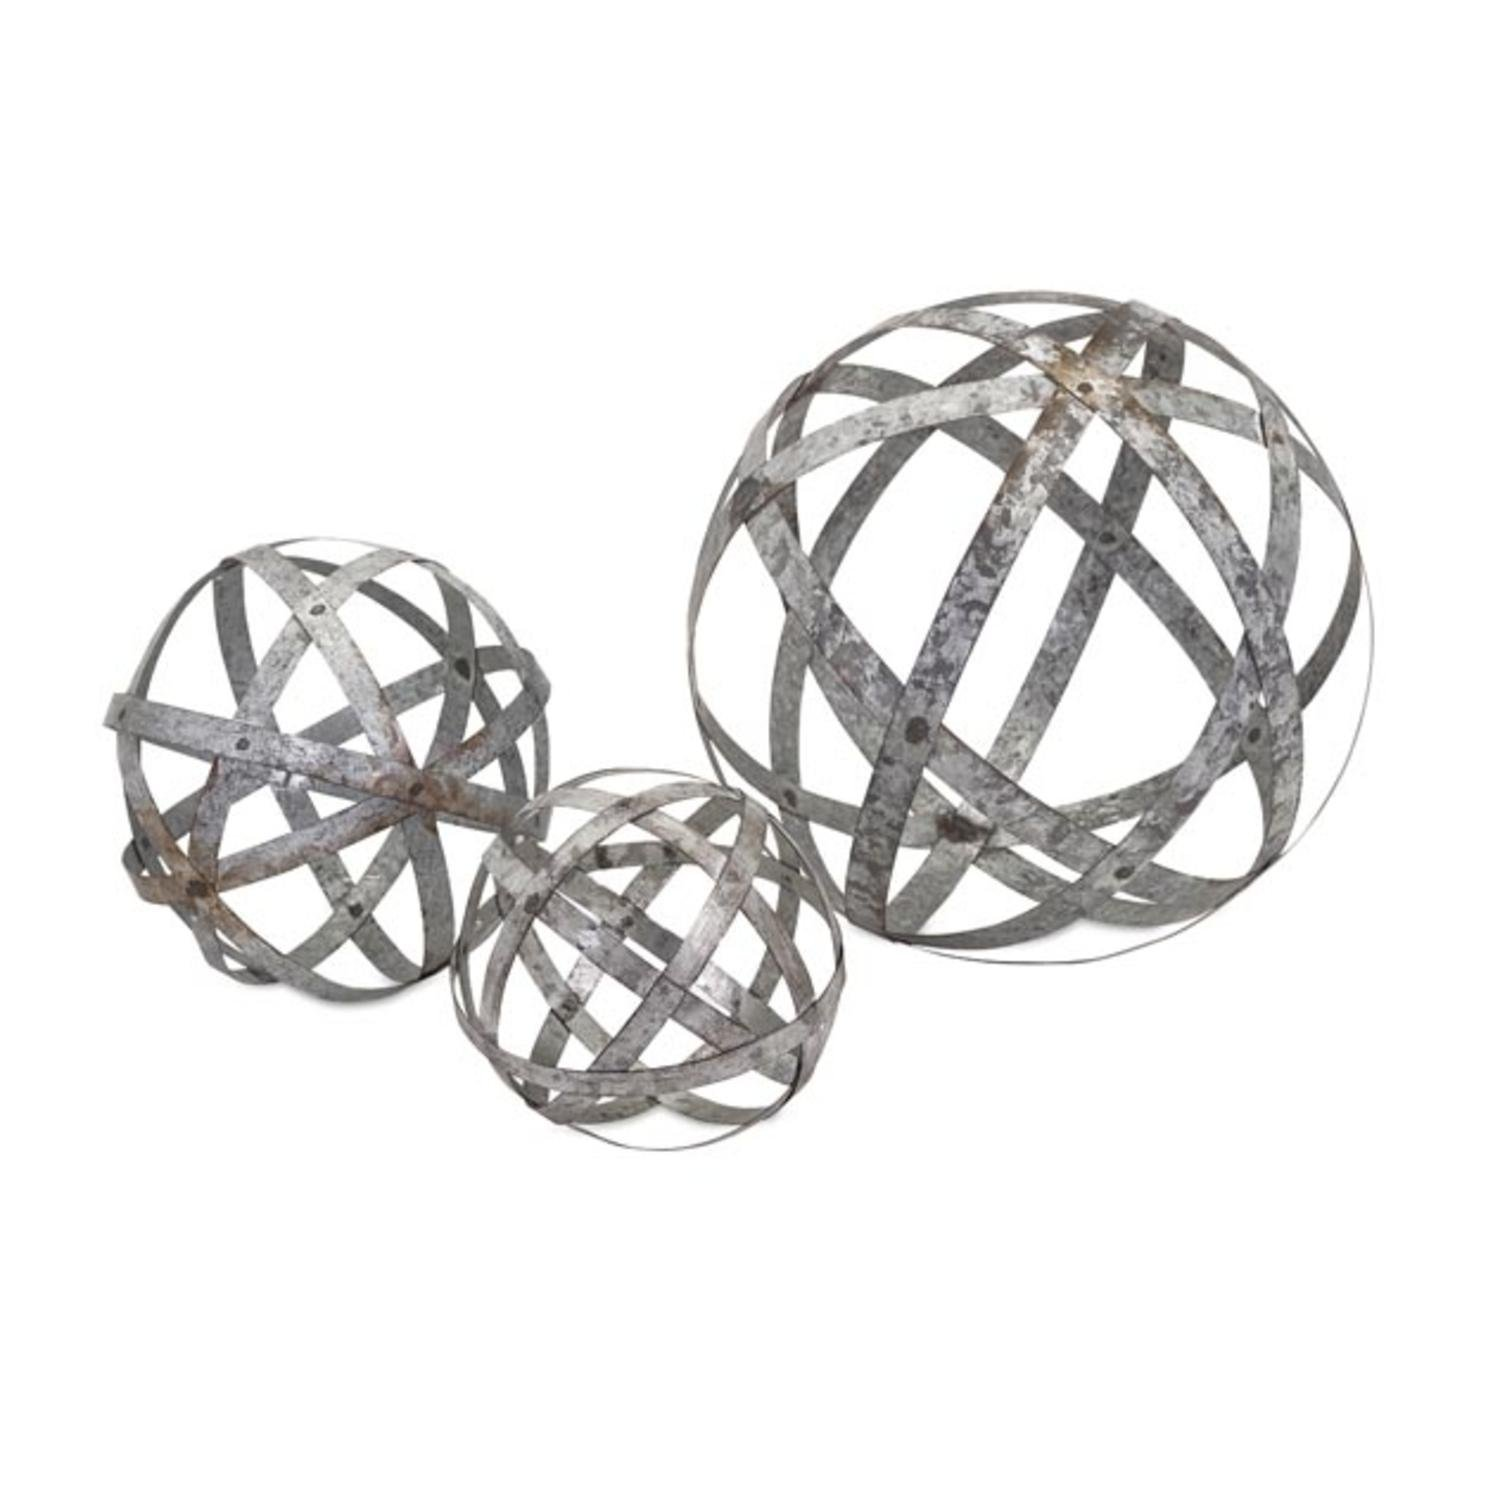 CC Home Furnishings Set of 3 Industrial Chic Rustic Galvanized Metal Round Ball Spheres Table Top Decor 12''